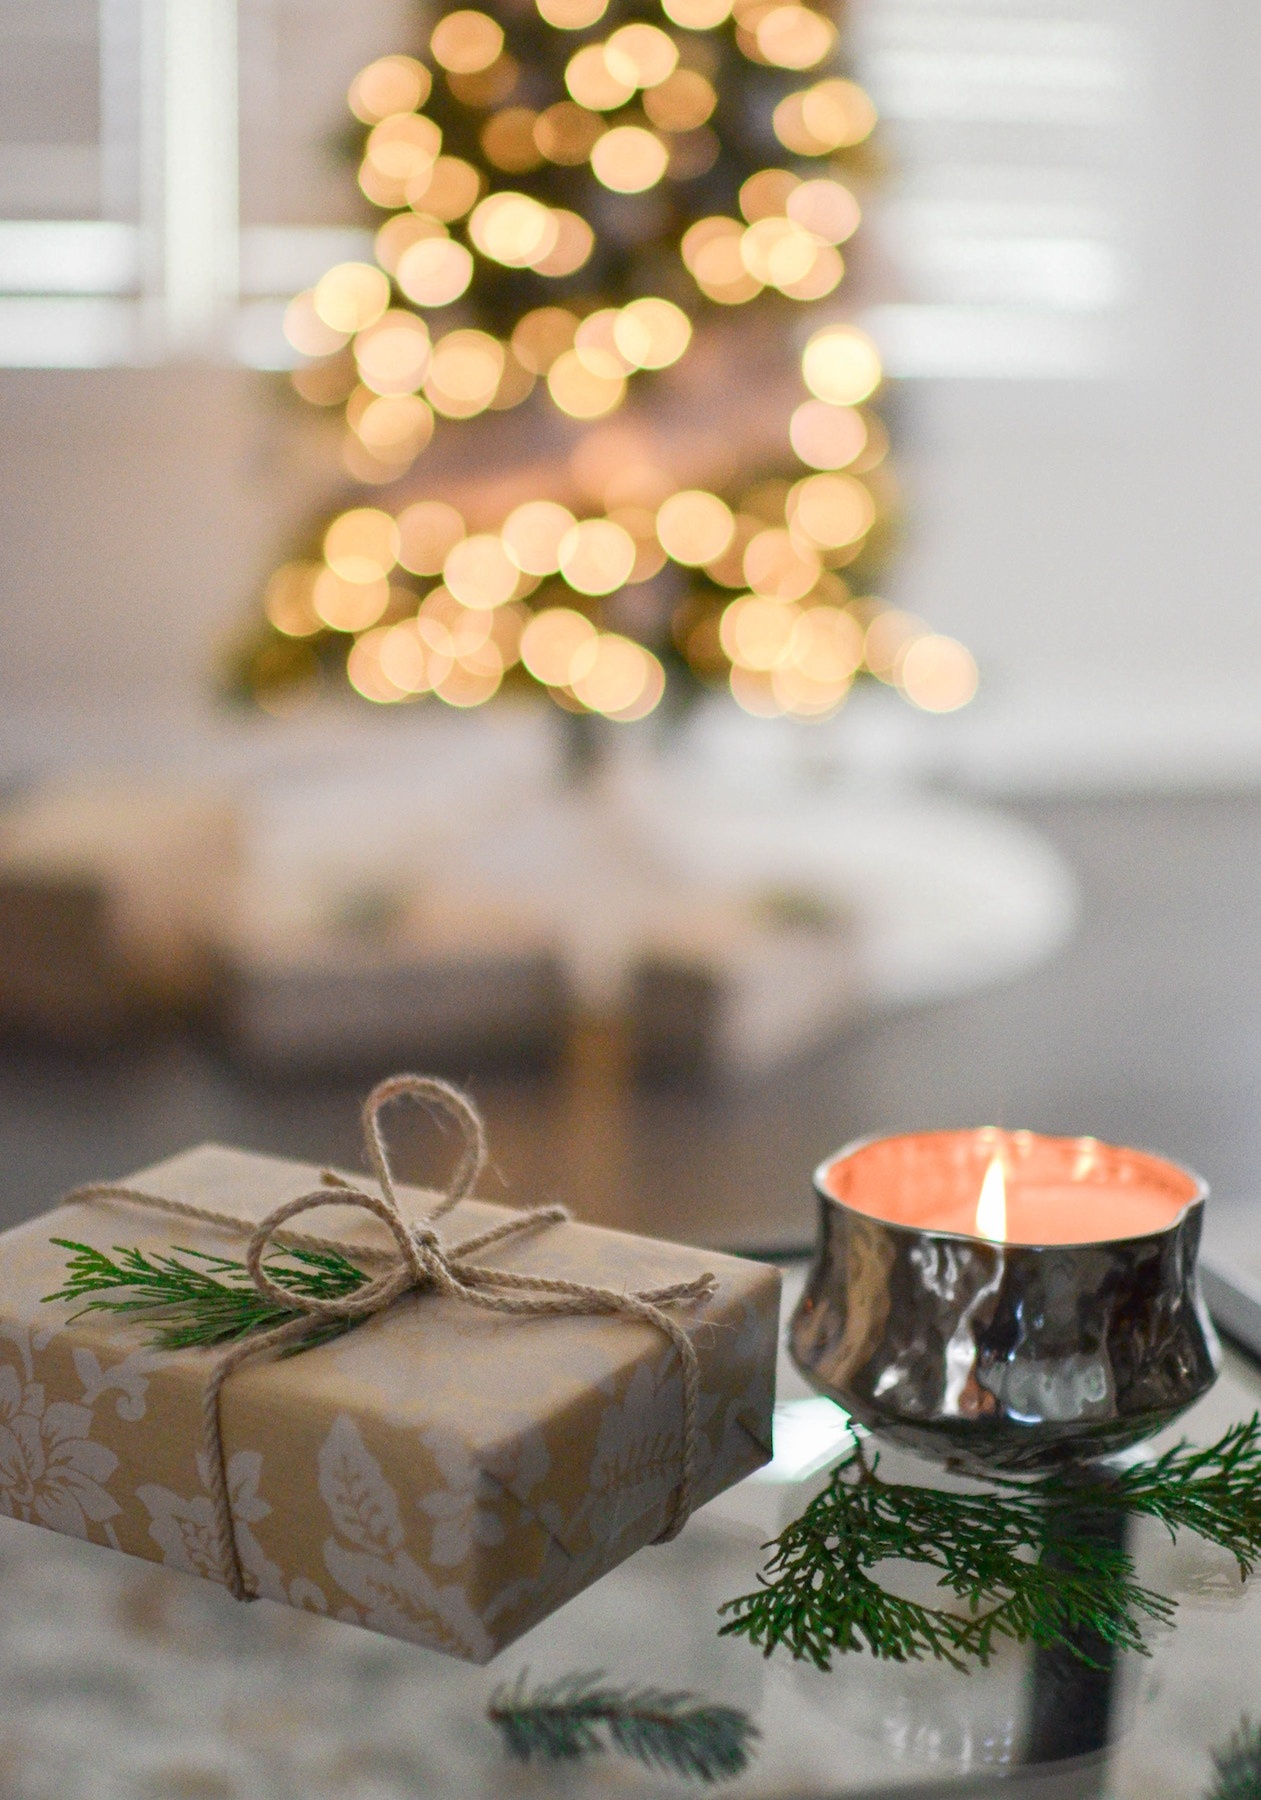 Christmas tree, present, and candle